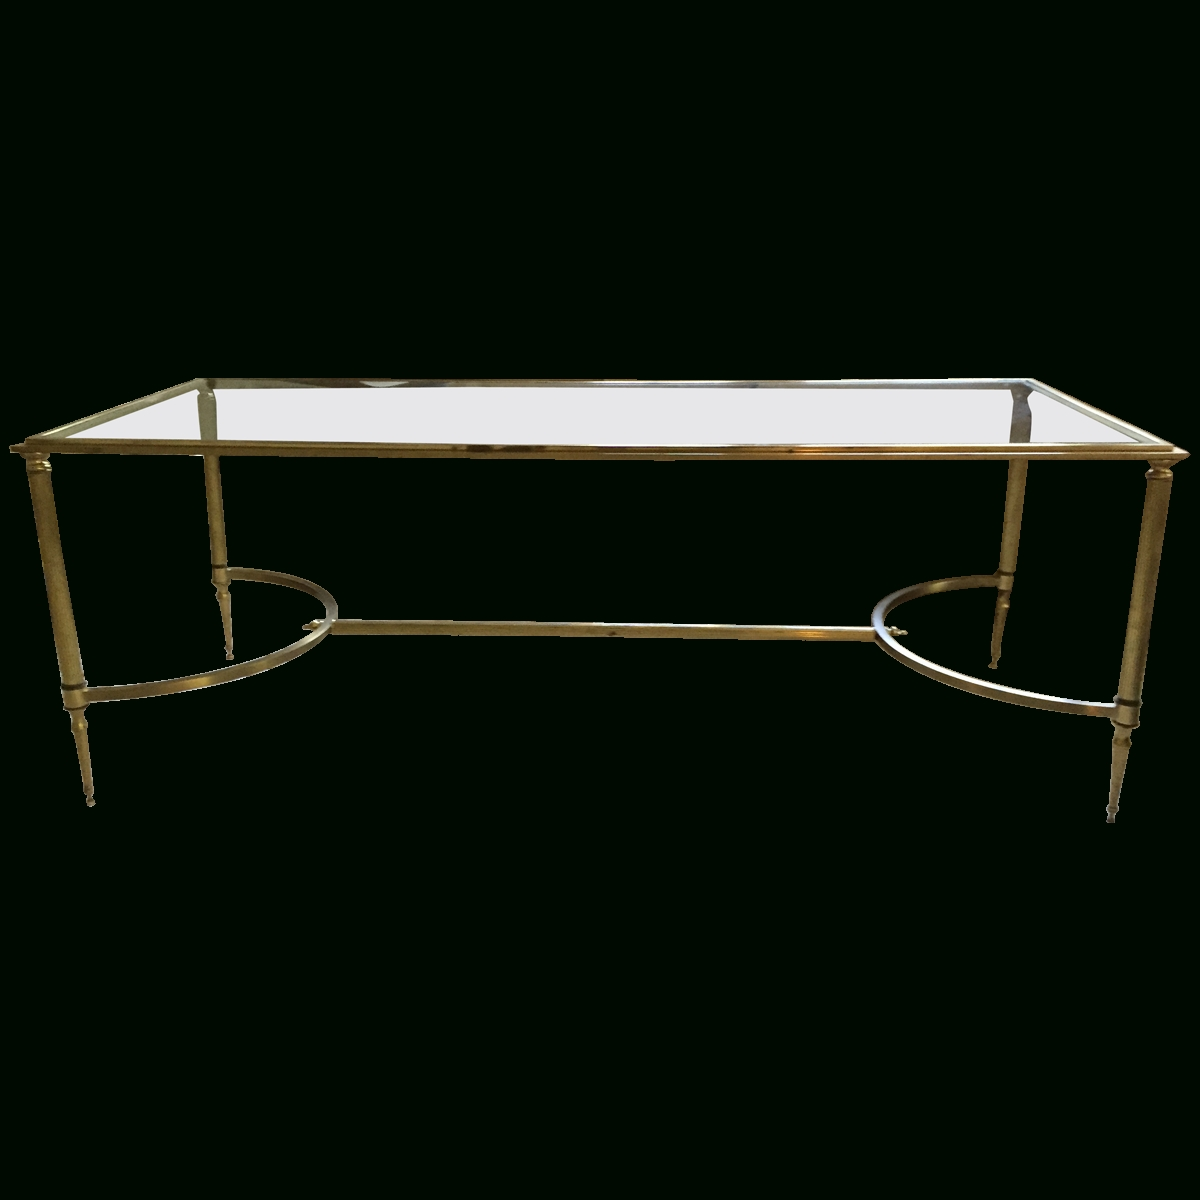 Viyet - Designer Furniture - Tables - Vintage Glass Top Coffee Table throughout Vintage Glass Coffee Tables (Image 29 of 30)